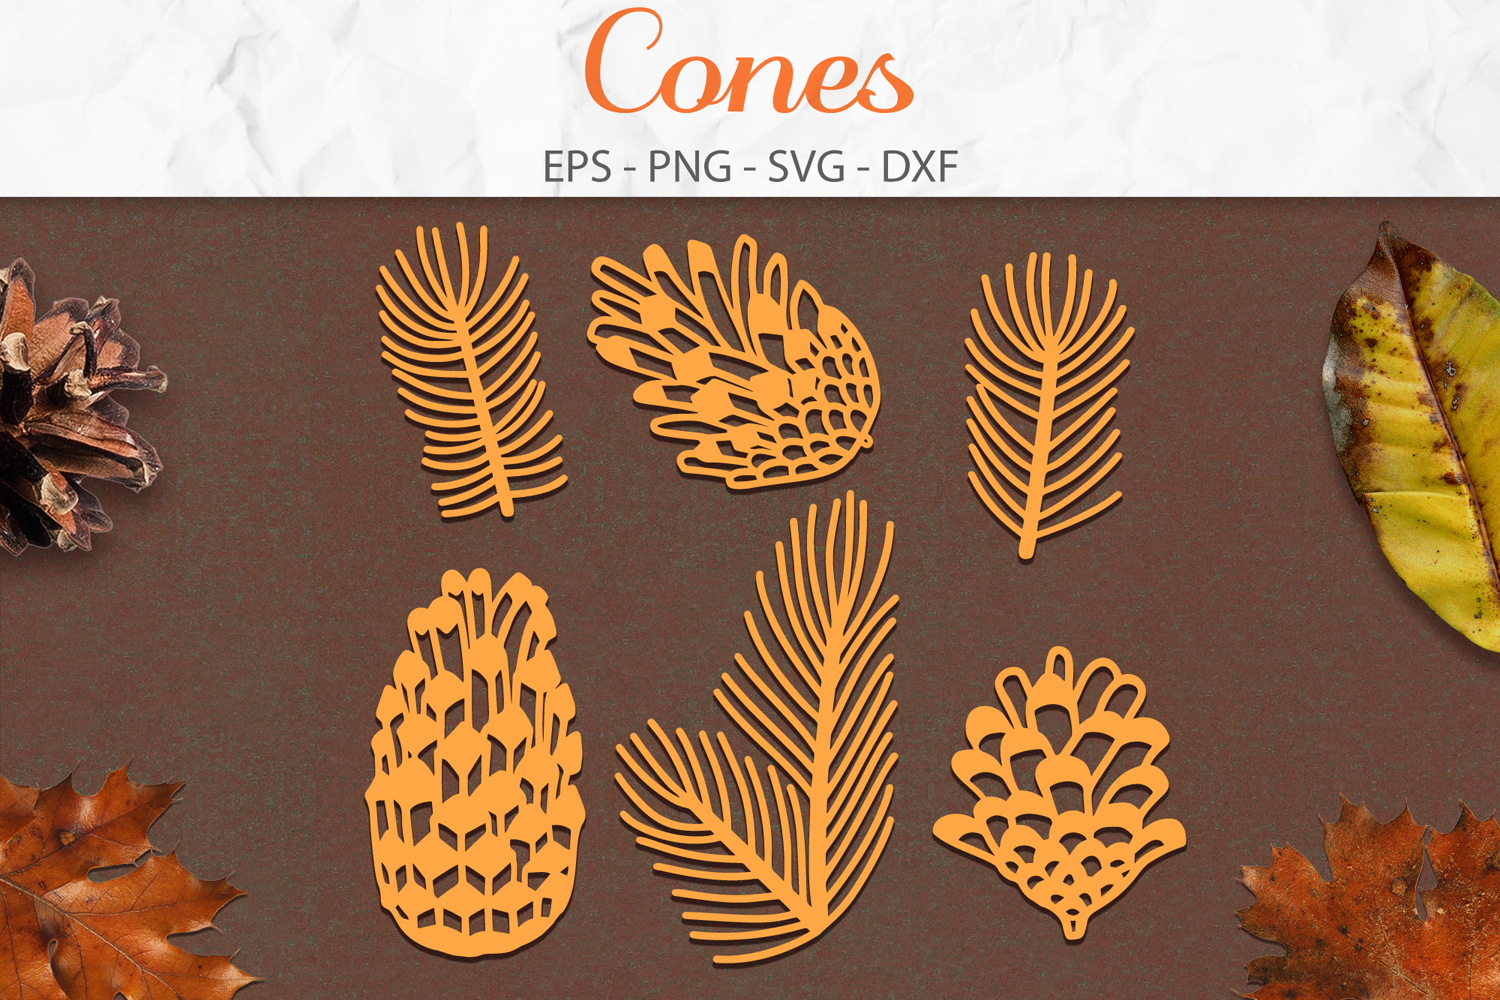 Cones Set svg png dxf eps - Cone Pine Branches Paper Cut example image 1